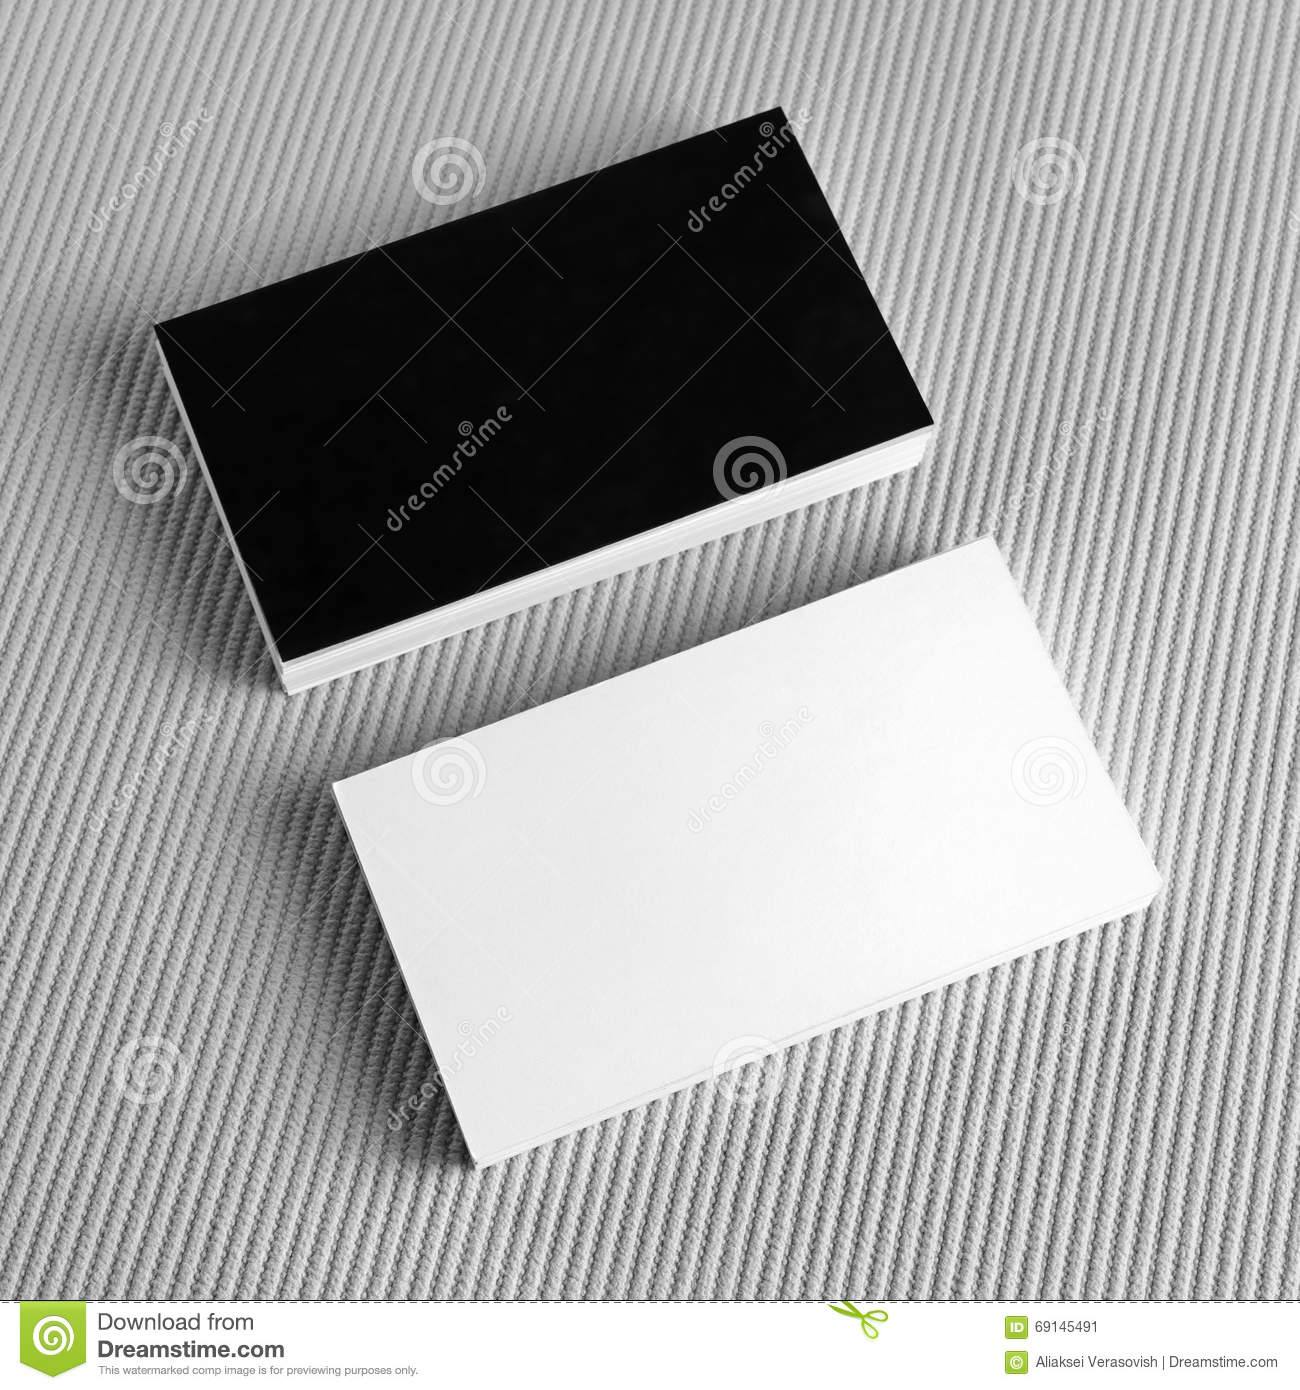 Blank Black And White Business Cards Stock Photo - Image: 69145491